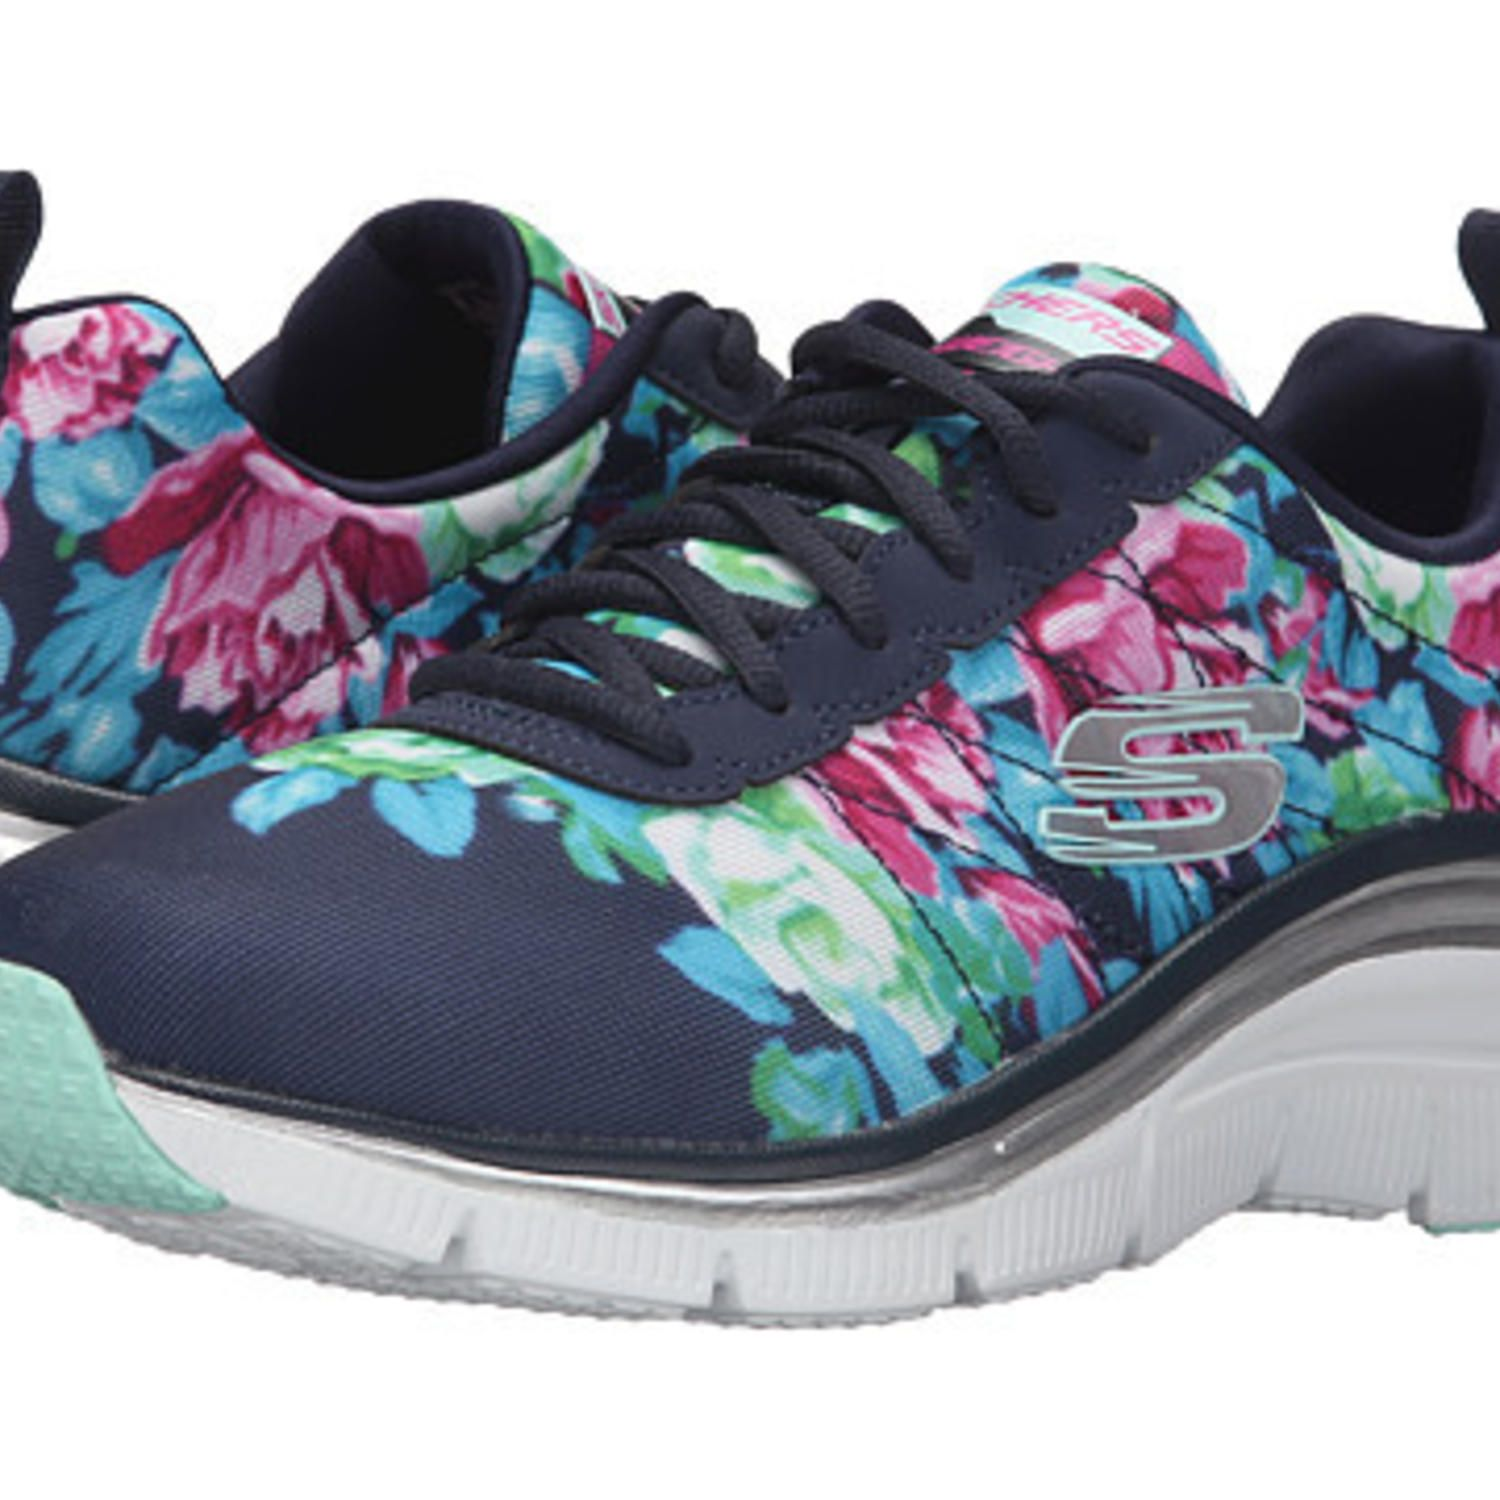 skechers workout clothes